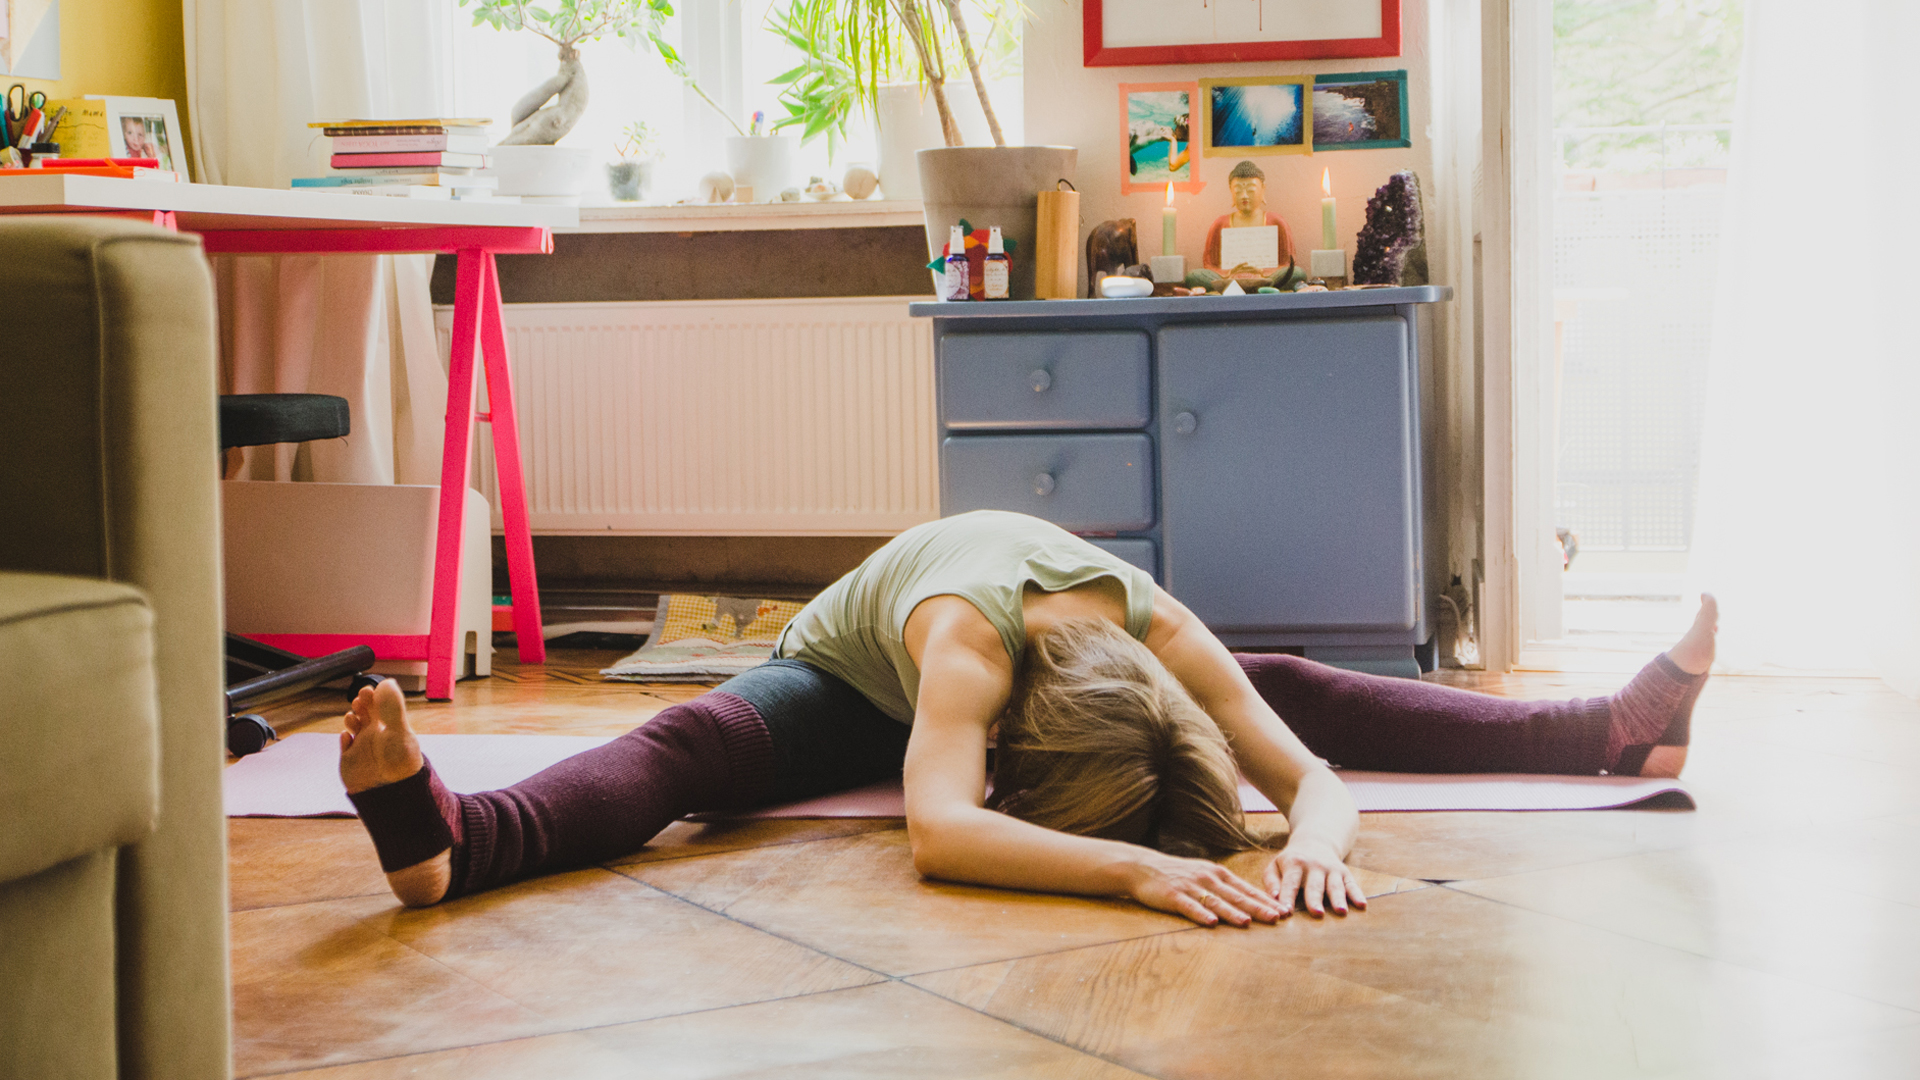 Isabella-Paulsen-talks-about-healing-leaky-gut-syndrome,-bone-broth-and-yoga-Foodadit (2)